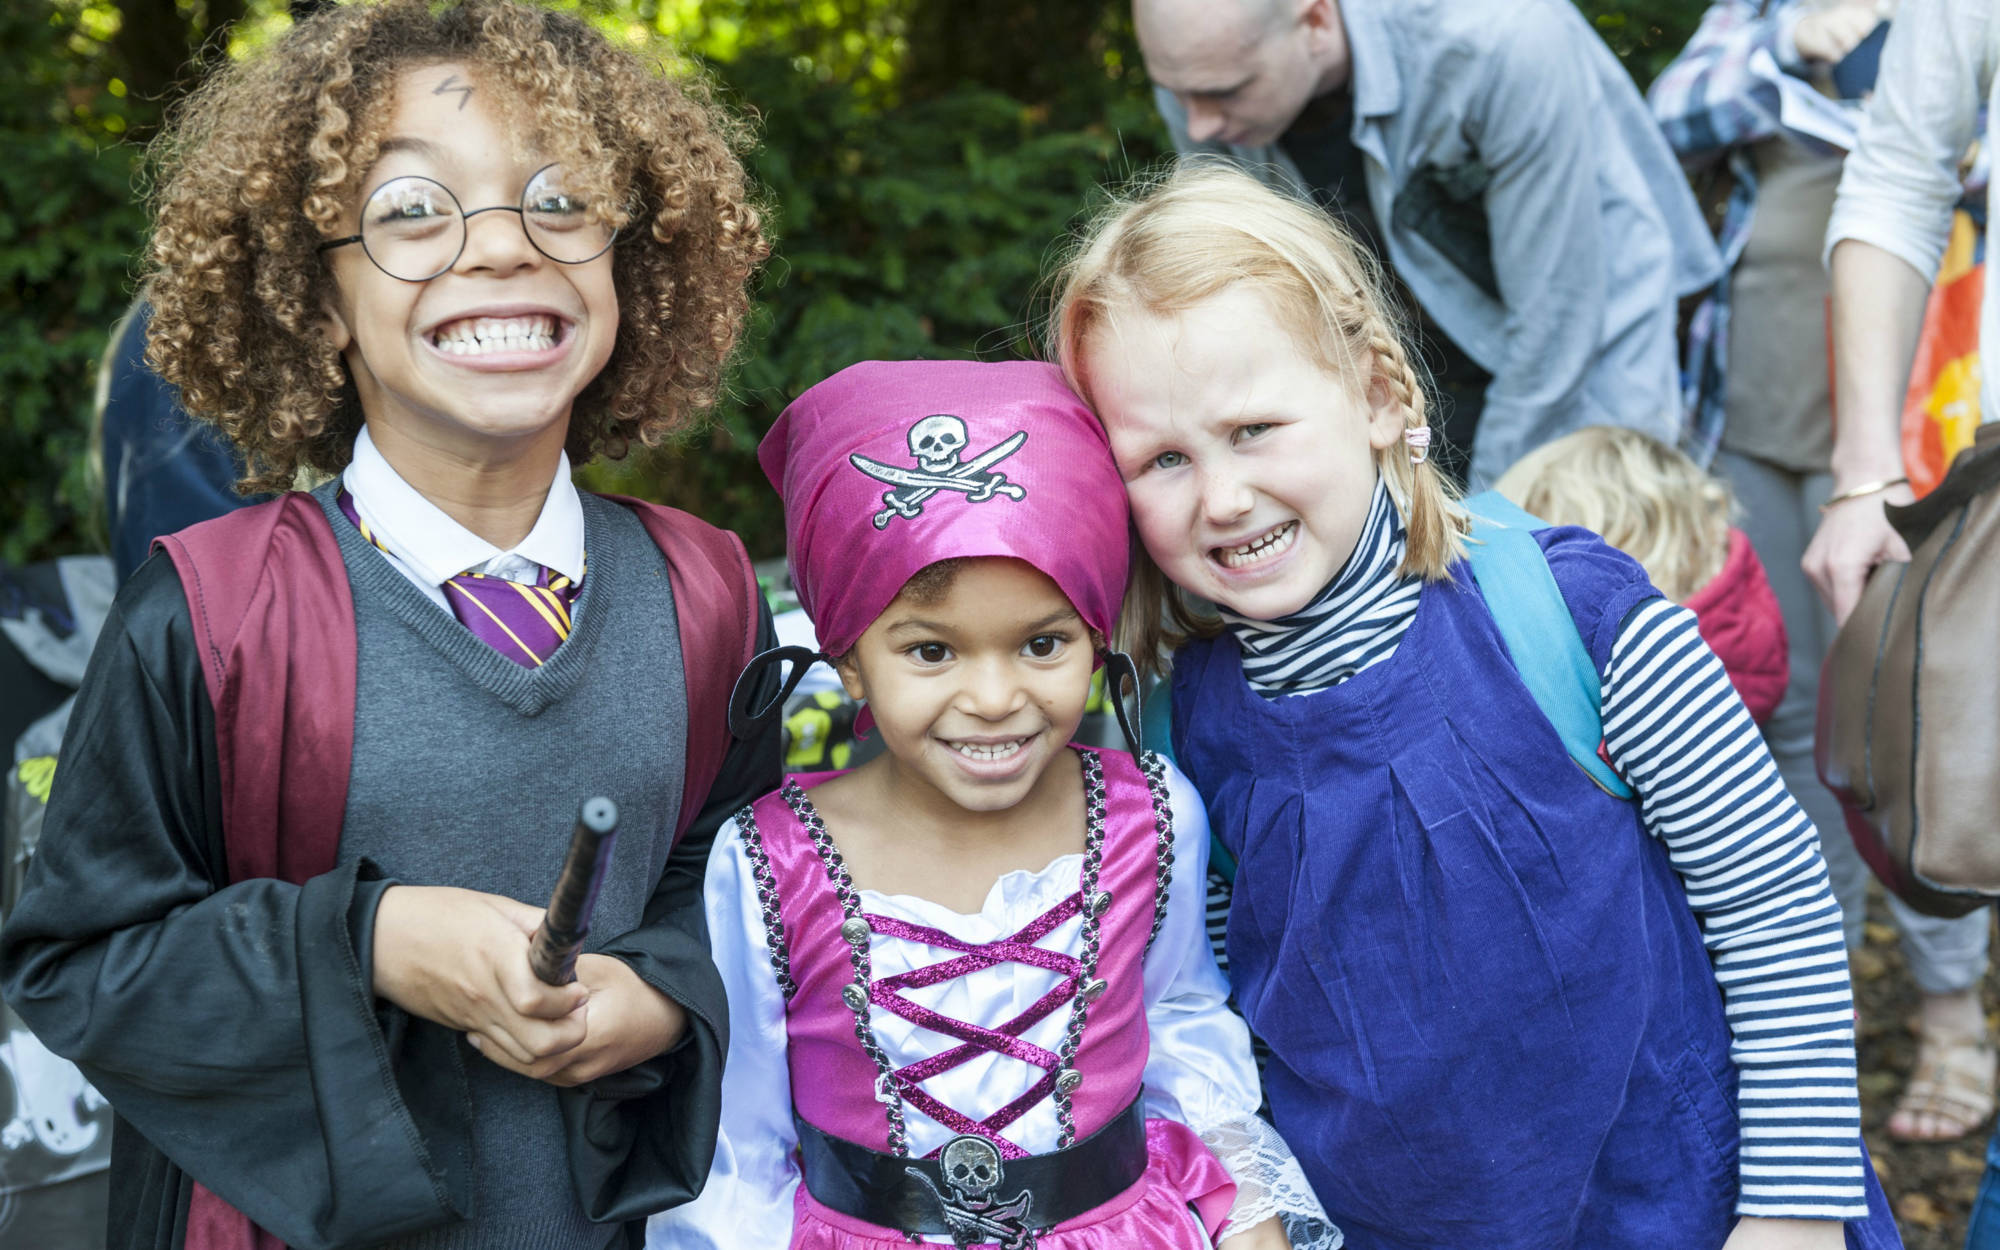 Children in fancy dress for Halloween at Waddesdon